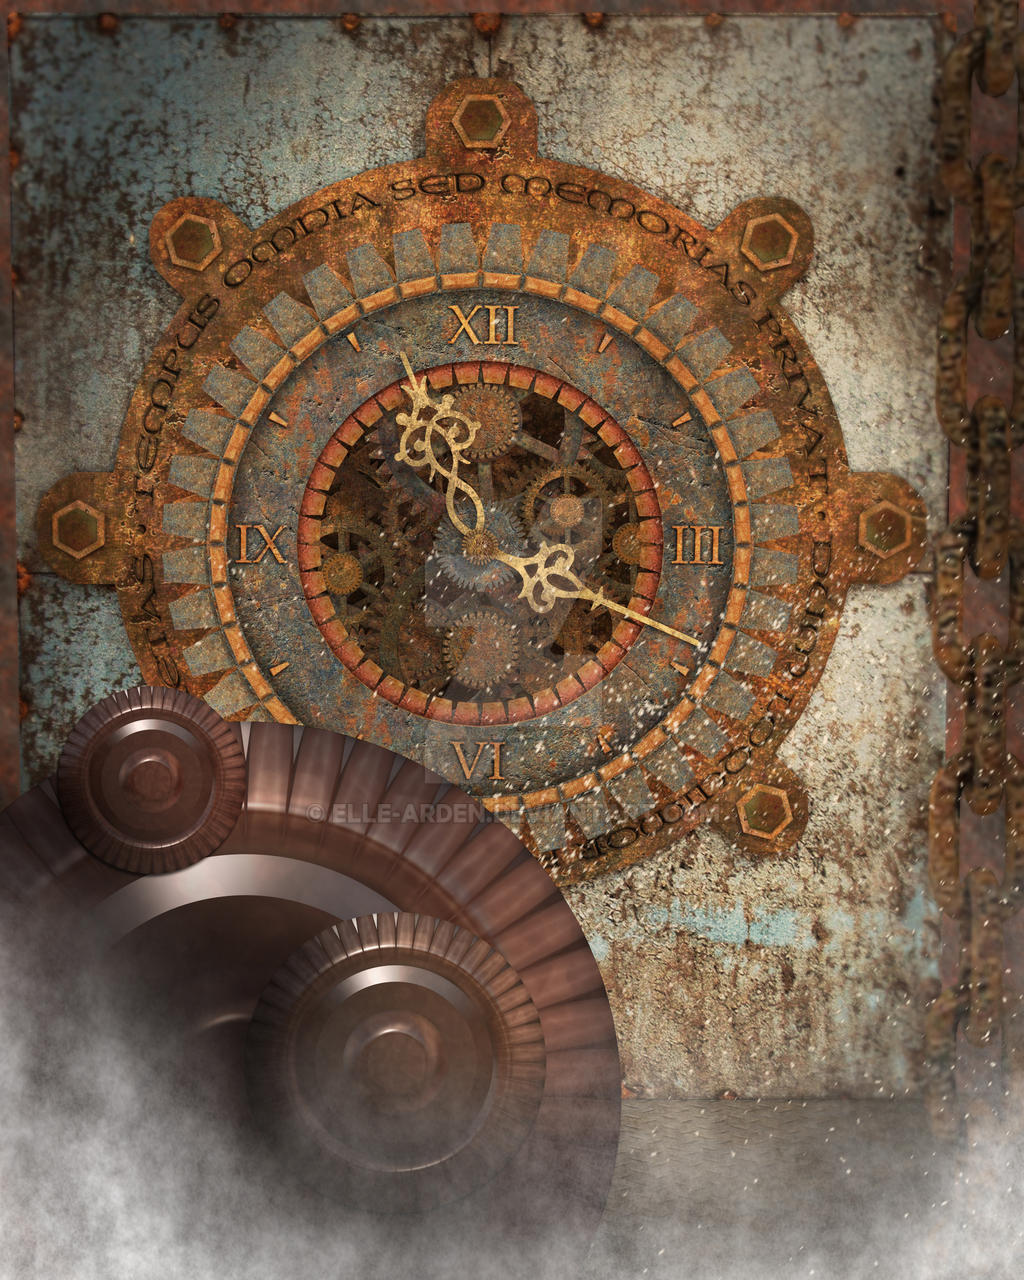 steampunk clock background 2 by elle arden on deviantart. Black Bedroom Furniture Sets. Home Design Ideas